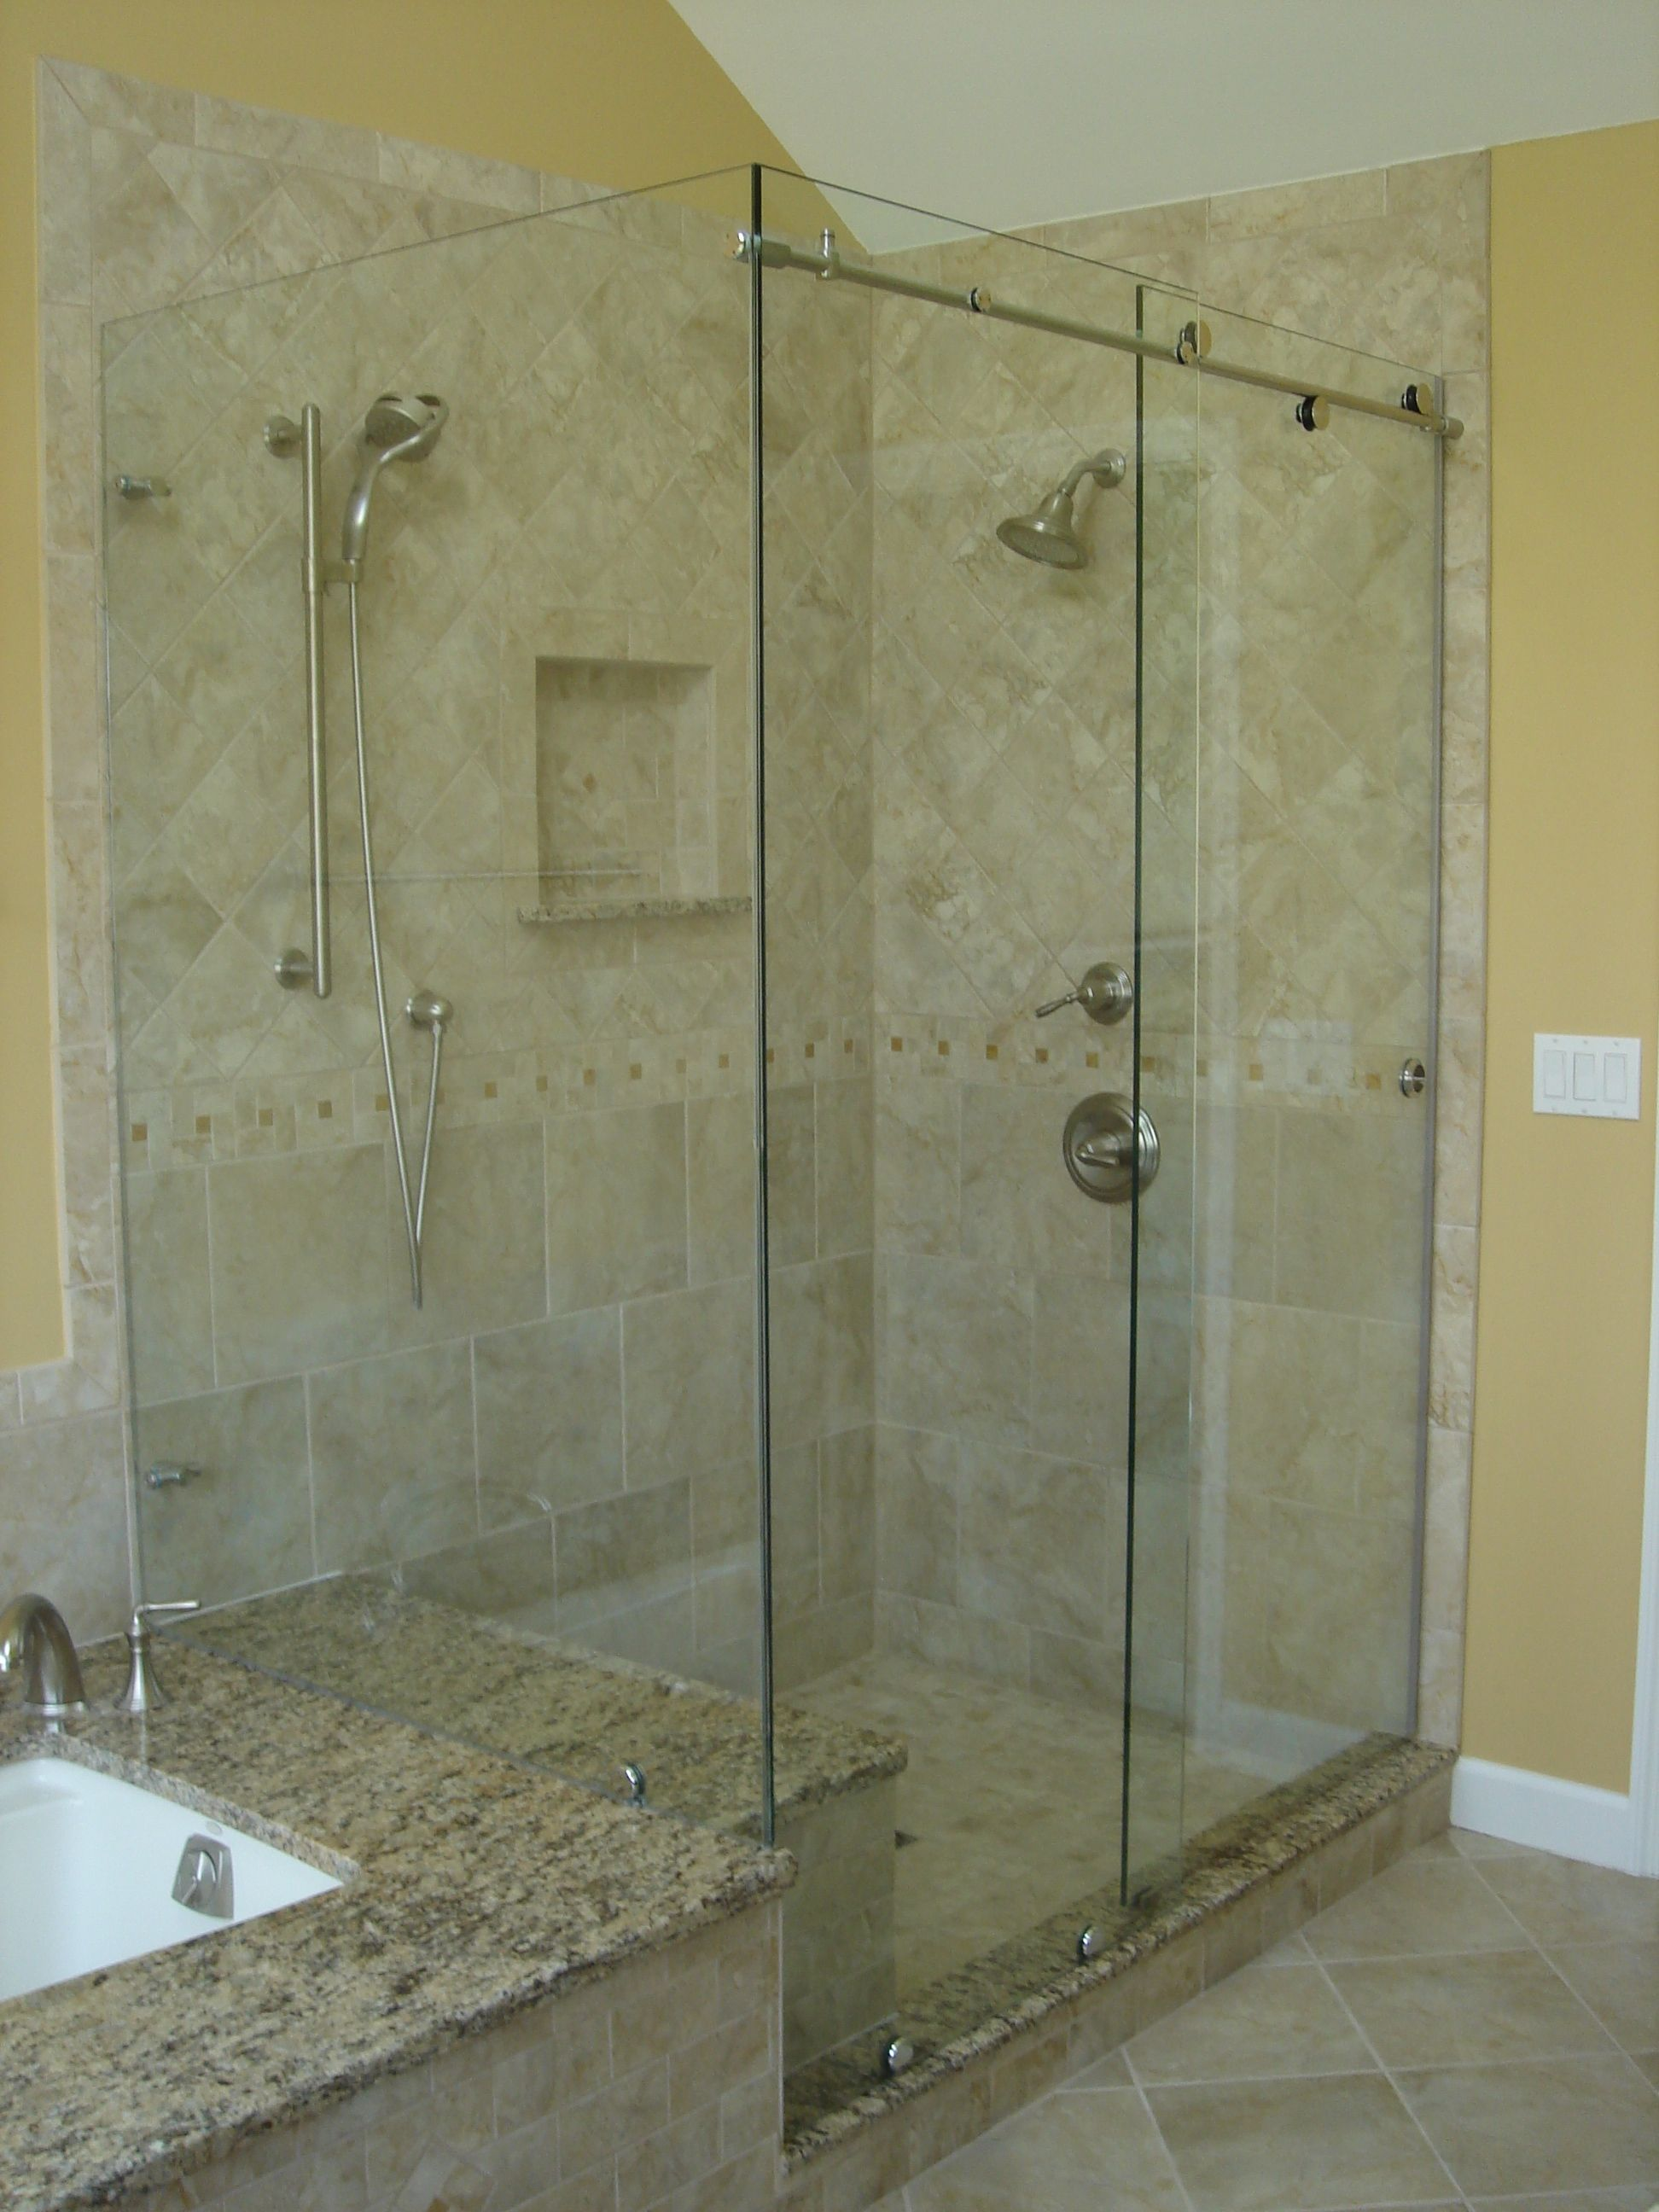 Glass shower doors frameless new cardinal skyline series shower glass shower doors frameless new cardinal skyline series shower door eventelaan Images